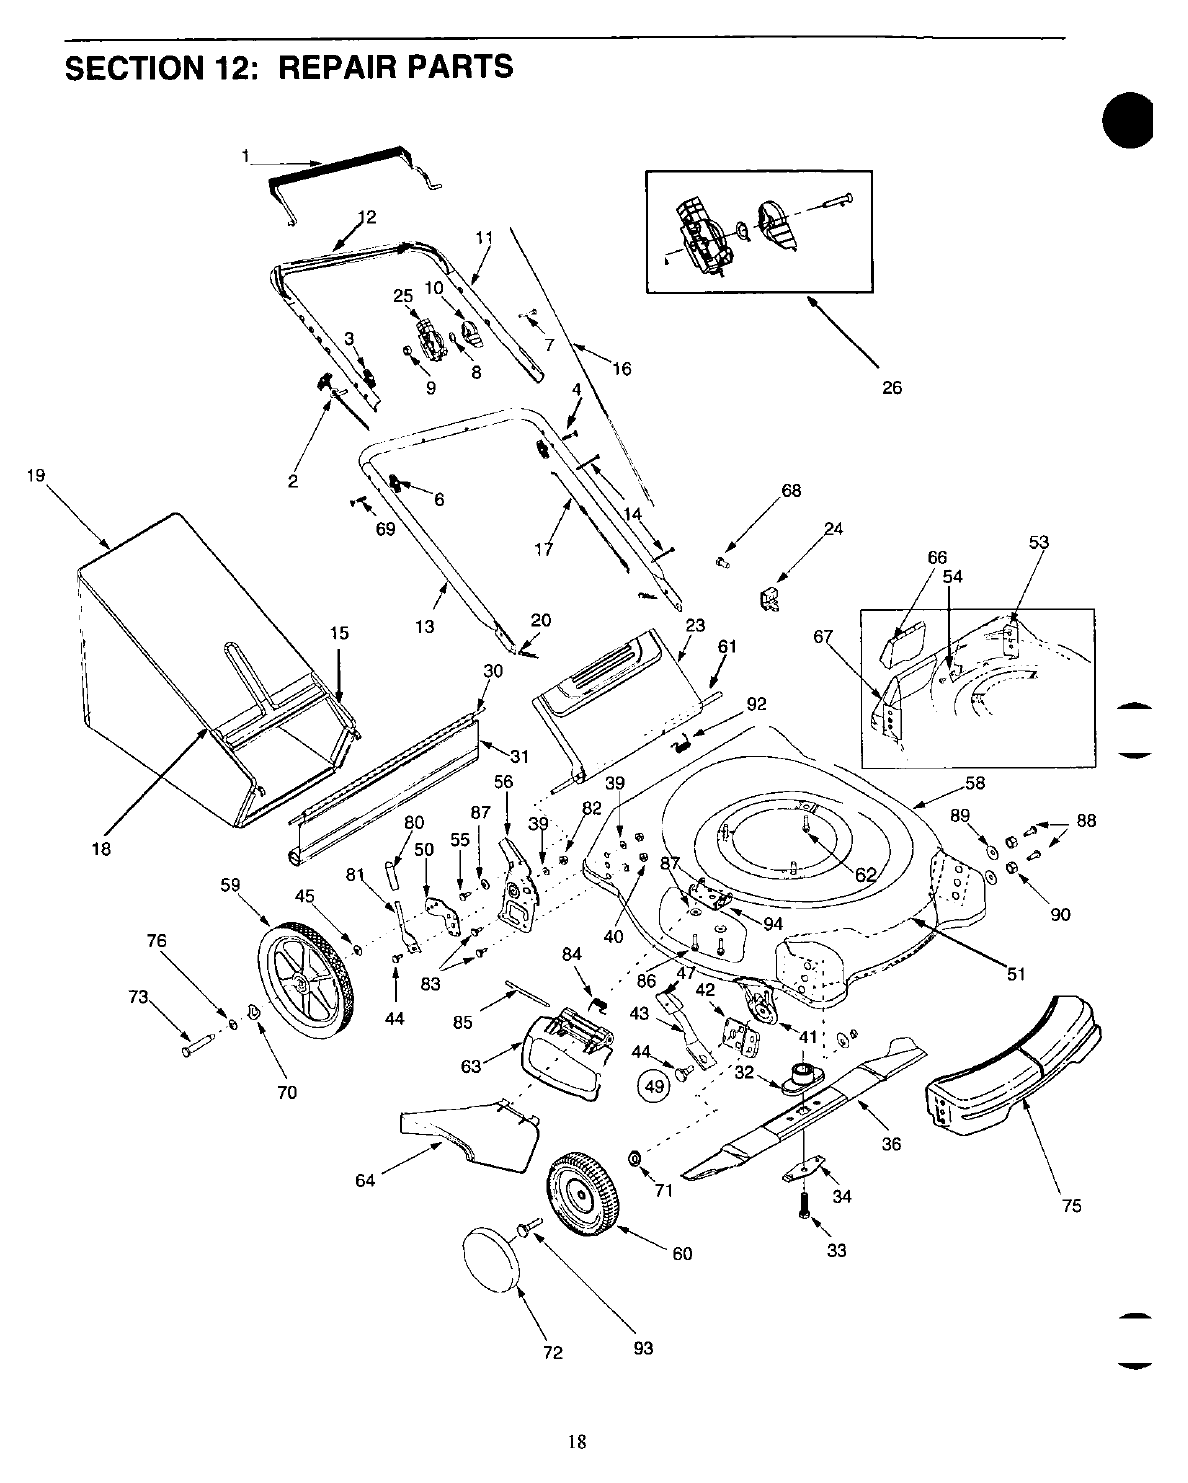 Page 18 of Yard-Man Lawn Mower 11A-549C401 User Guide